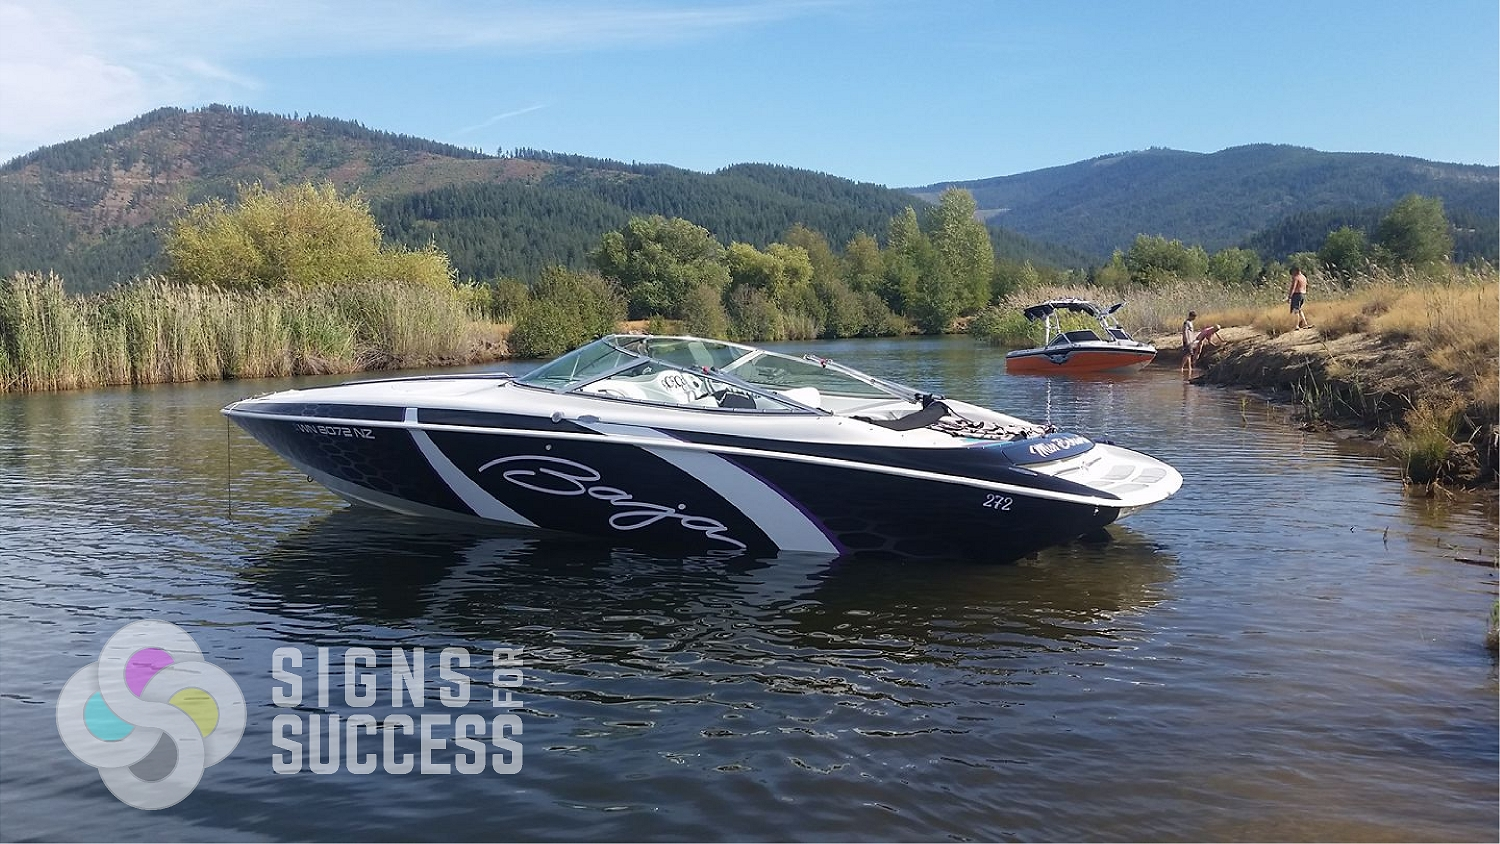 Carbon Fiber Boat Wrap Custom Boat Wraps Signs For Success